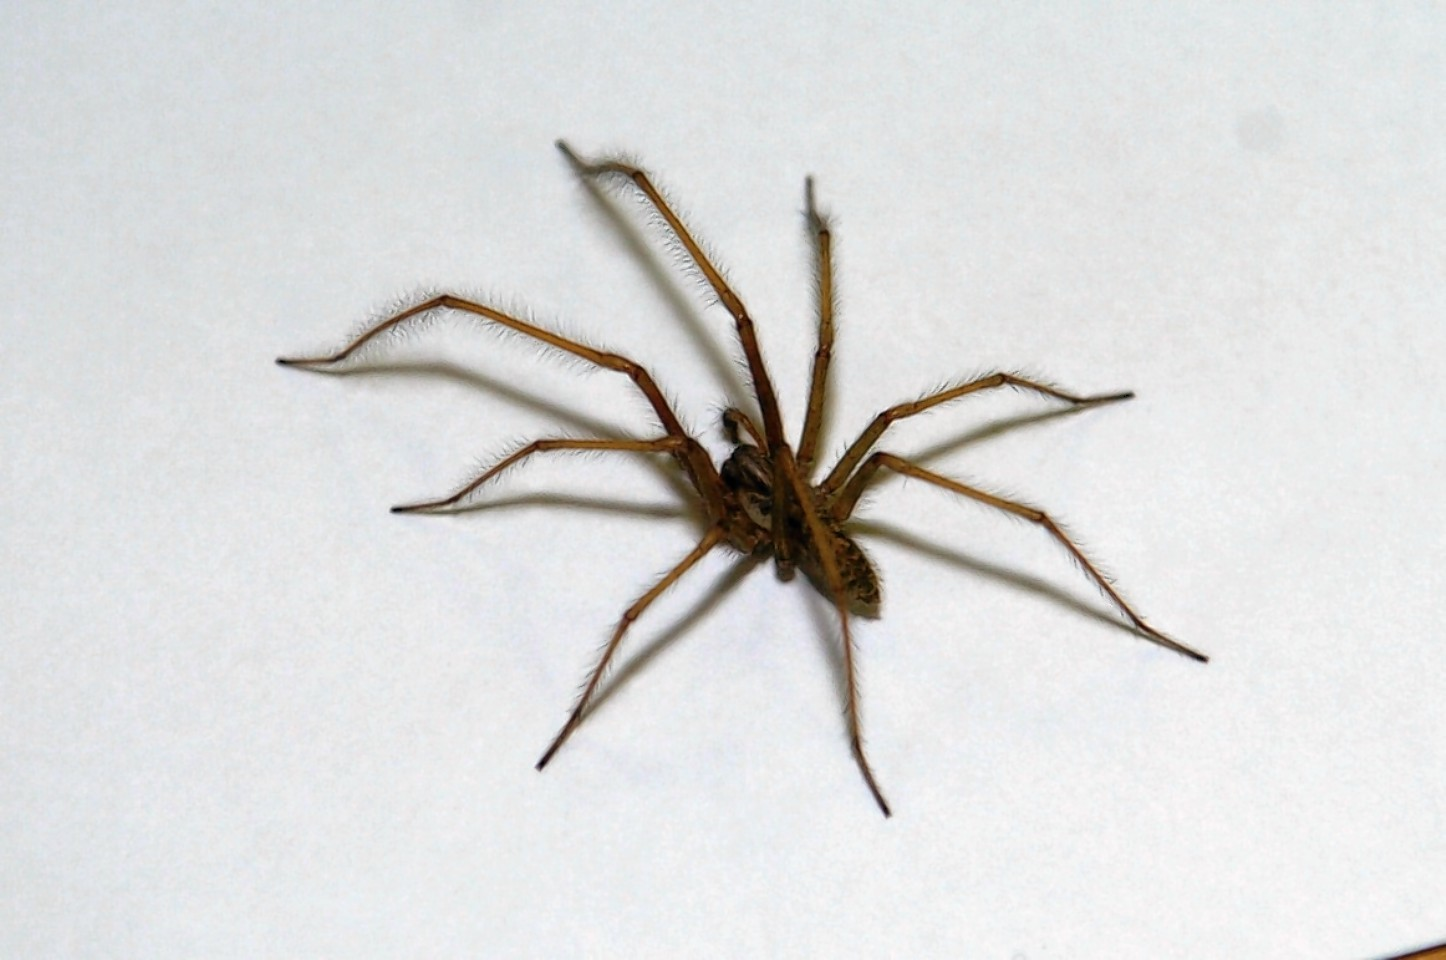 Spiders have now entered their mating season